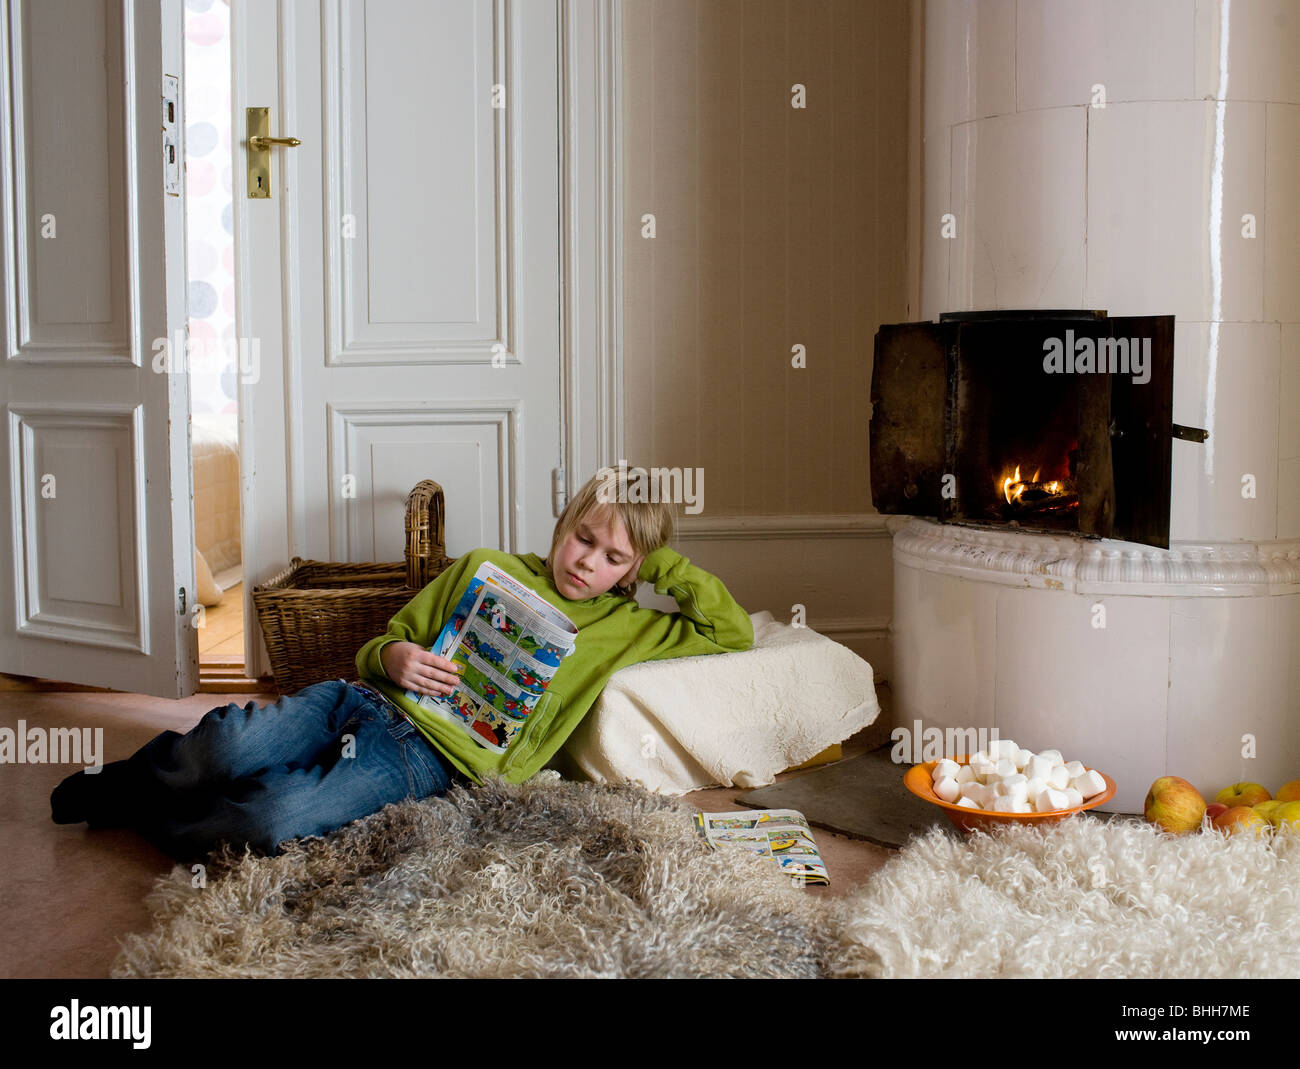 teen boy reading magazine stockfotos teen boy reading magazine bilder alamy. Black Bedroom Furniture Sets. Home Design Ideas